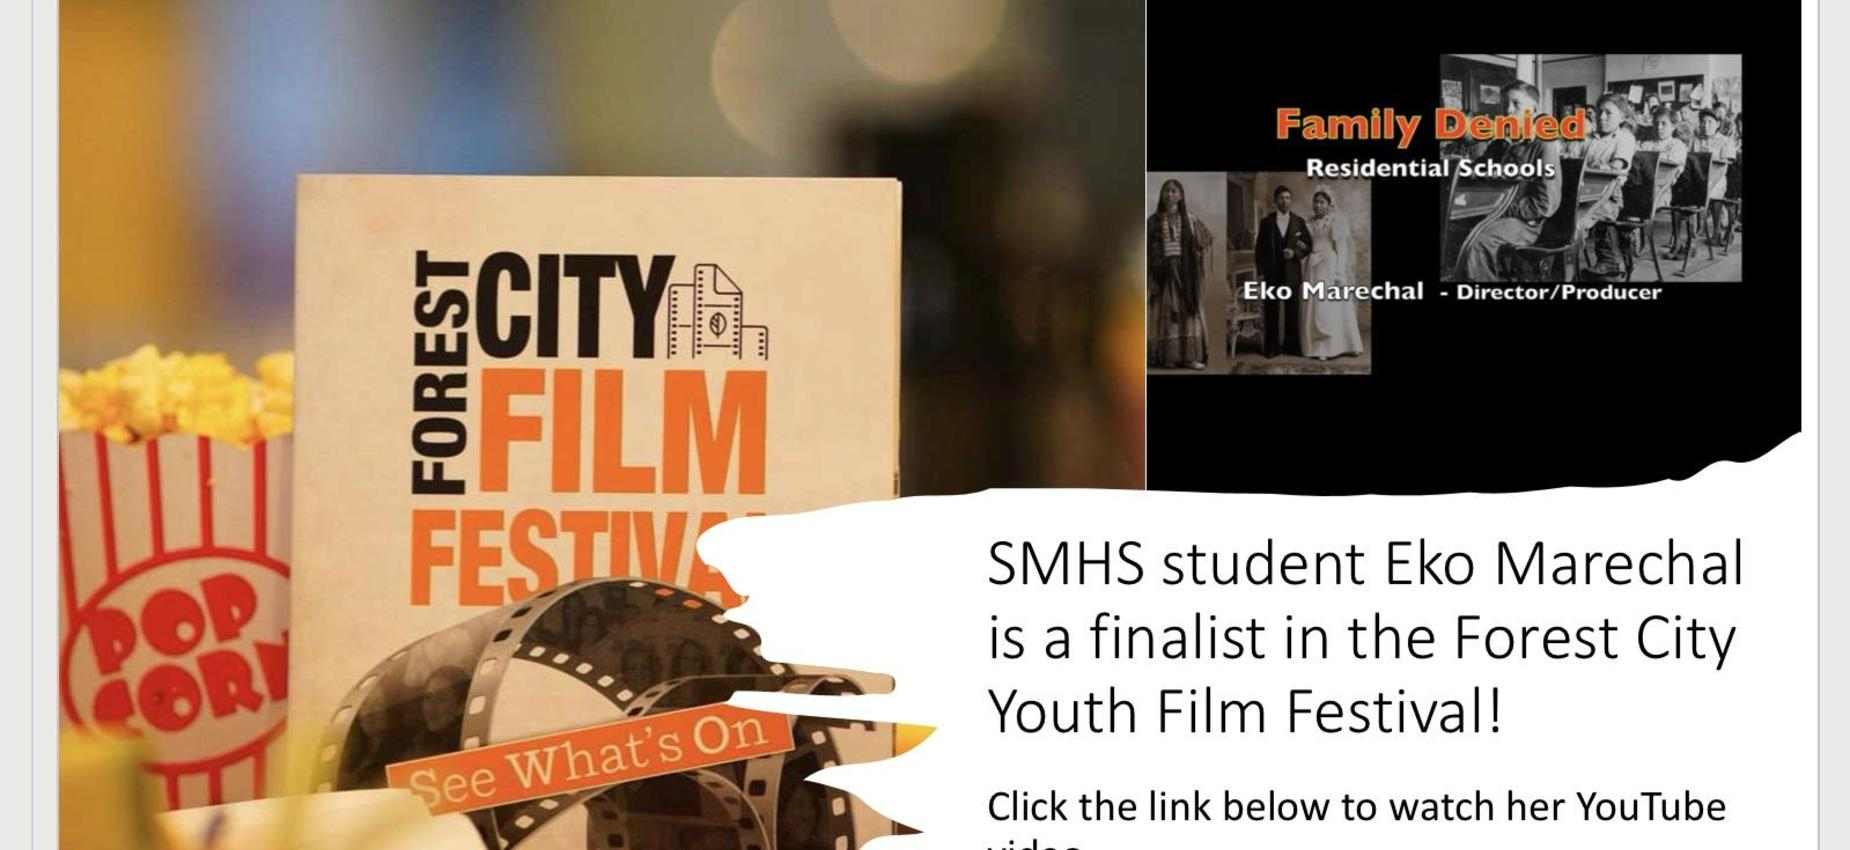 SMHS Student is a finalist at Forest City Film Festival